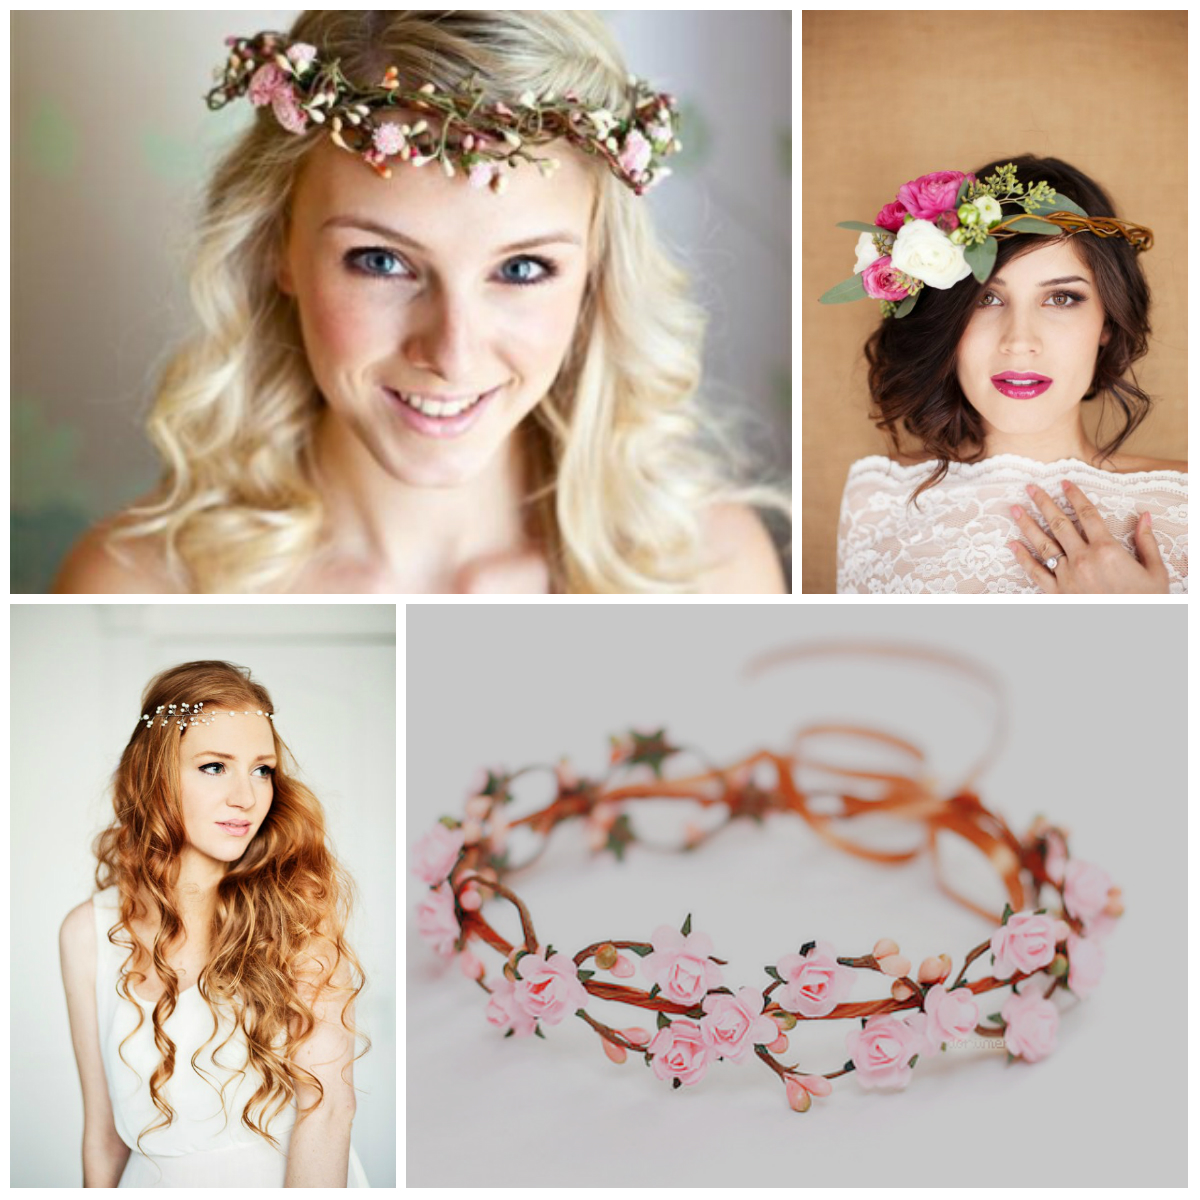 Wedding Hairstyle With Flowers: Wedding Hairstyles With Flowers